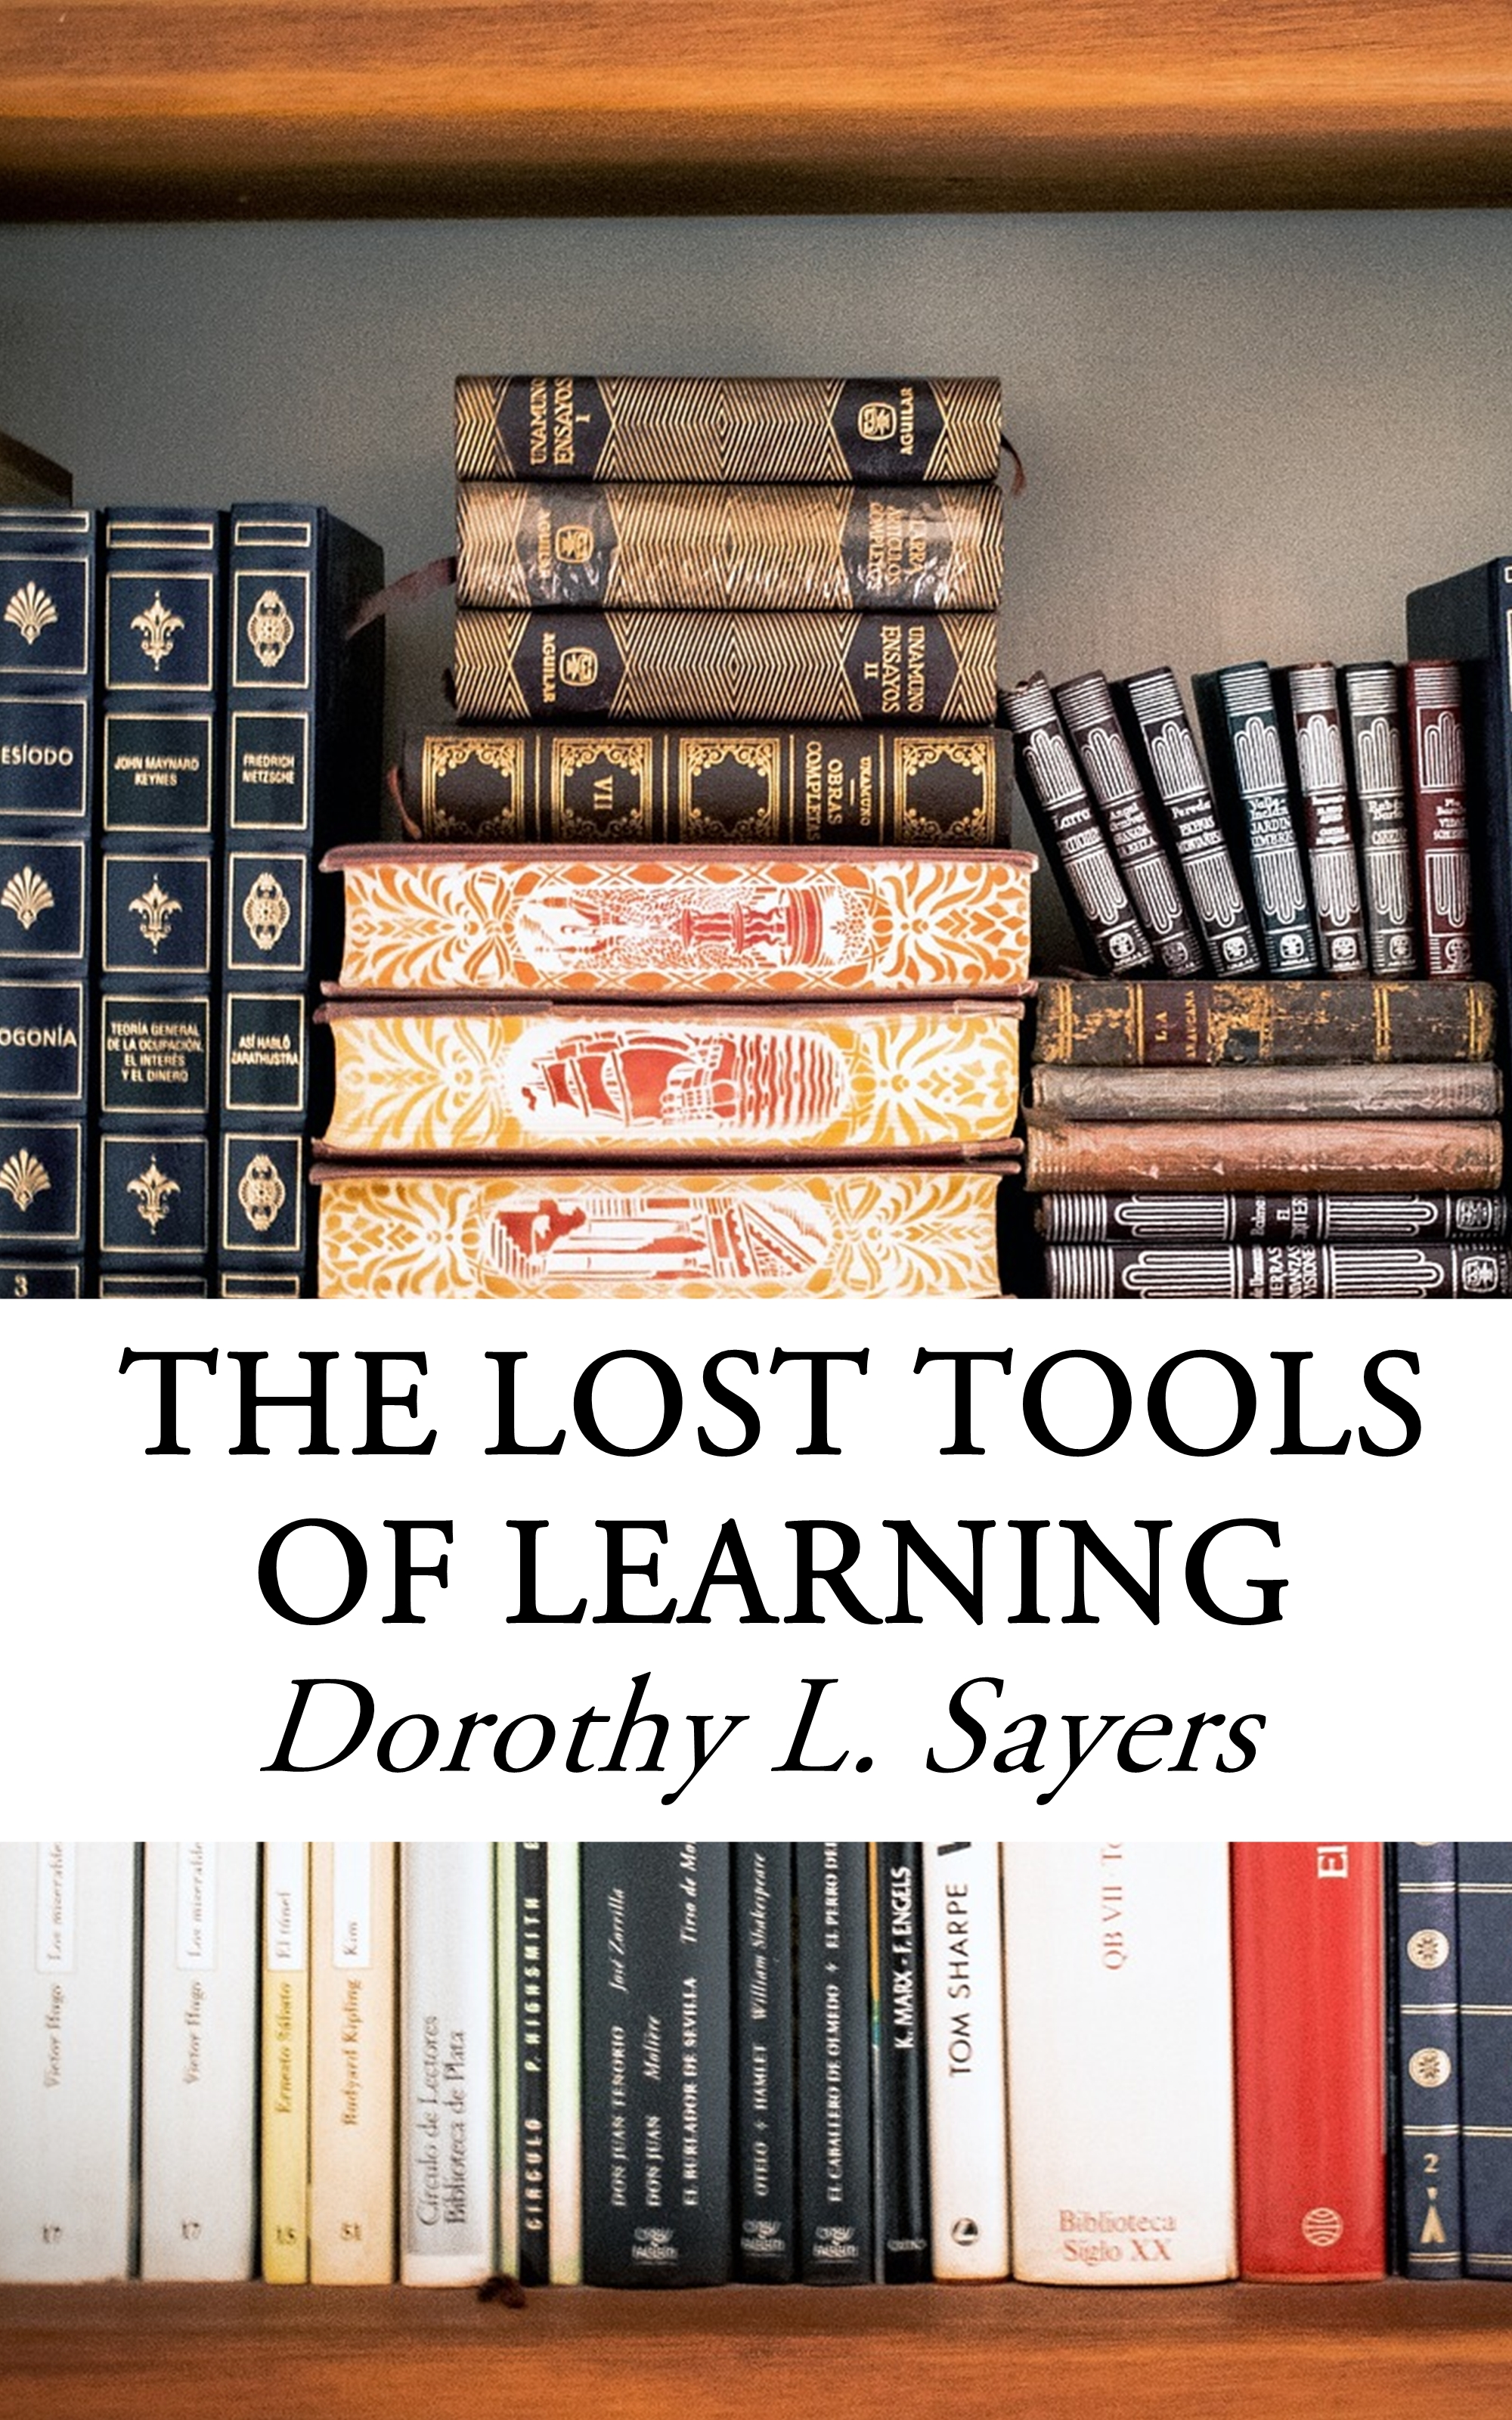 The lost tools of learning: symposium on education